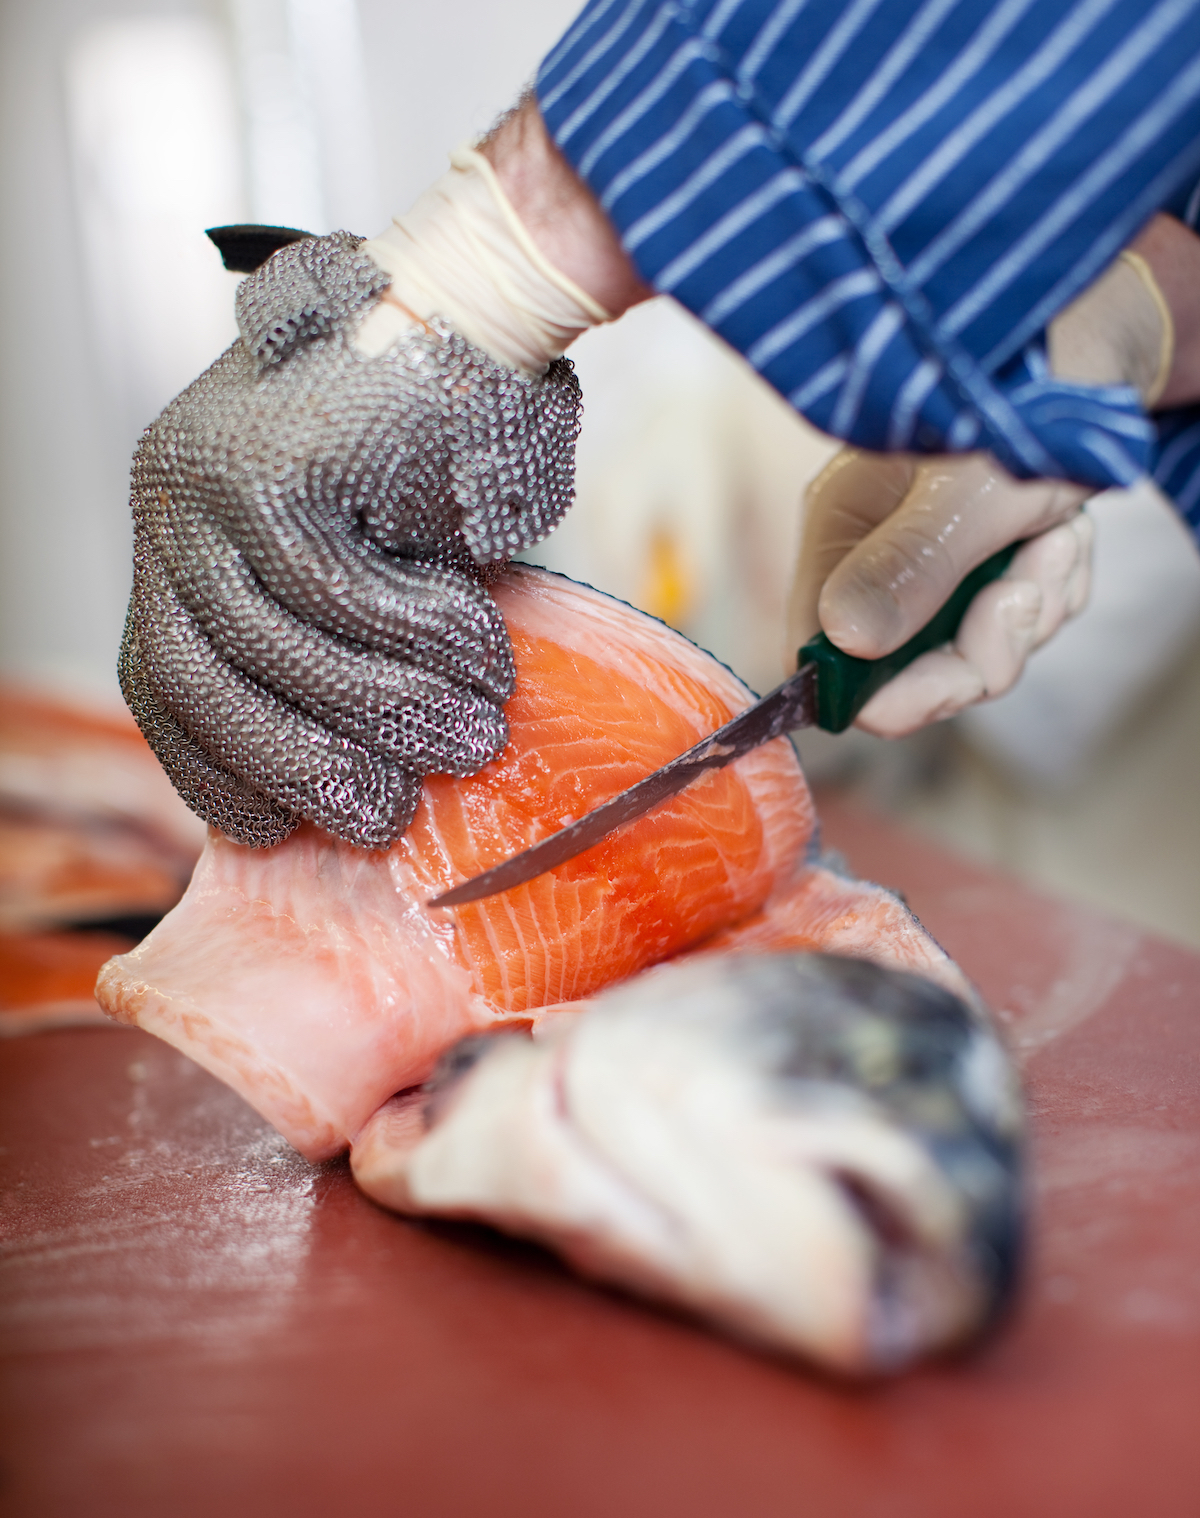 Lever les filets d'un poisson ©stockfour shutterstock